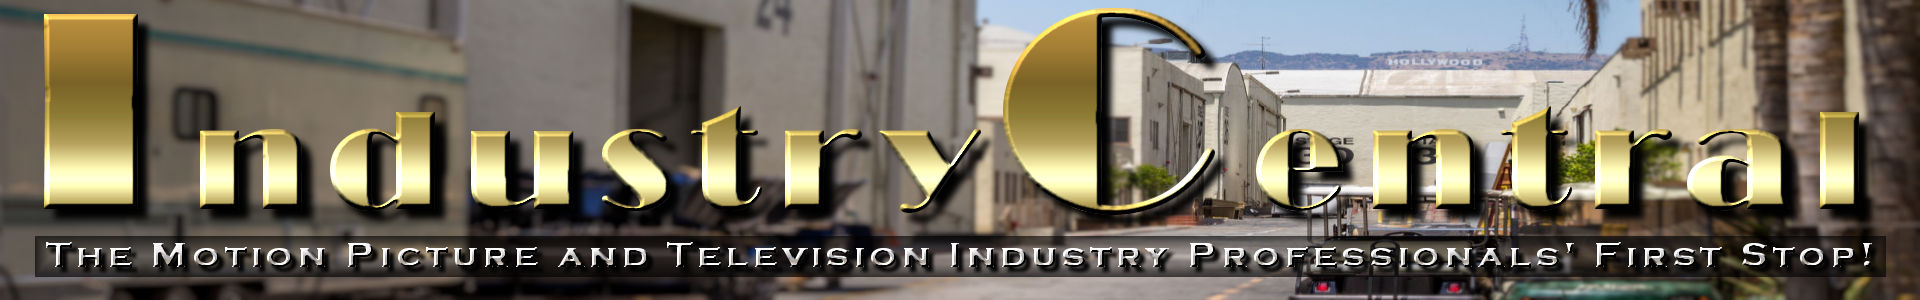 IndustryCentral -The Motion Picture & Television Industry Professionals' First Stop!